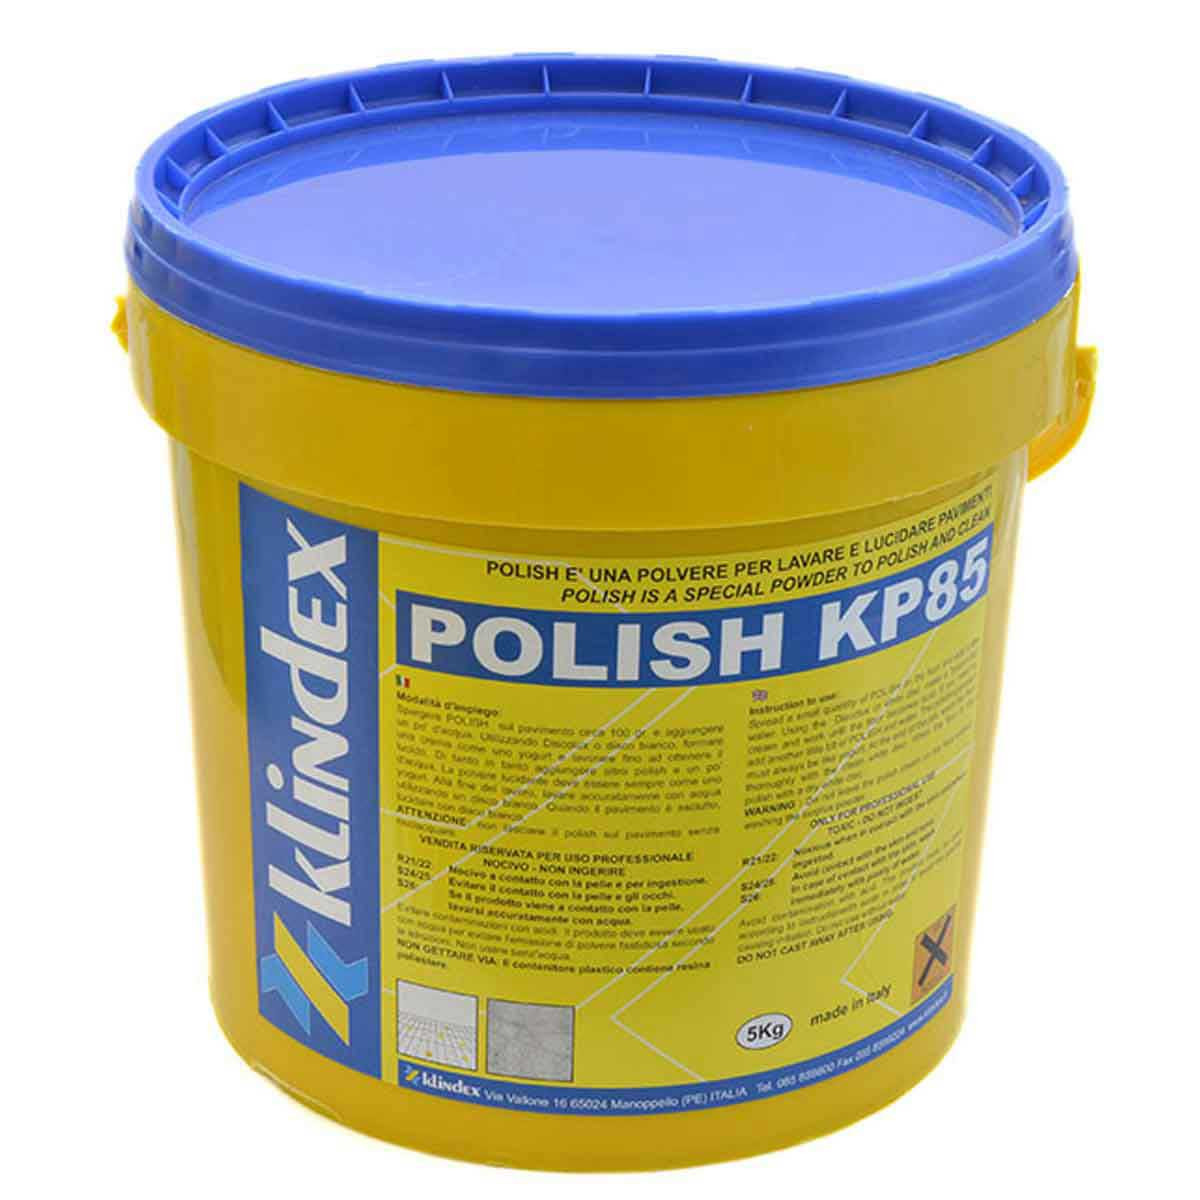 Klindex Polishing Powder for Marble, Terrazzo, Porcelain & Glass 000663